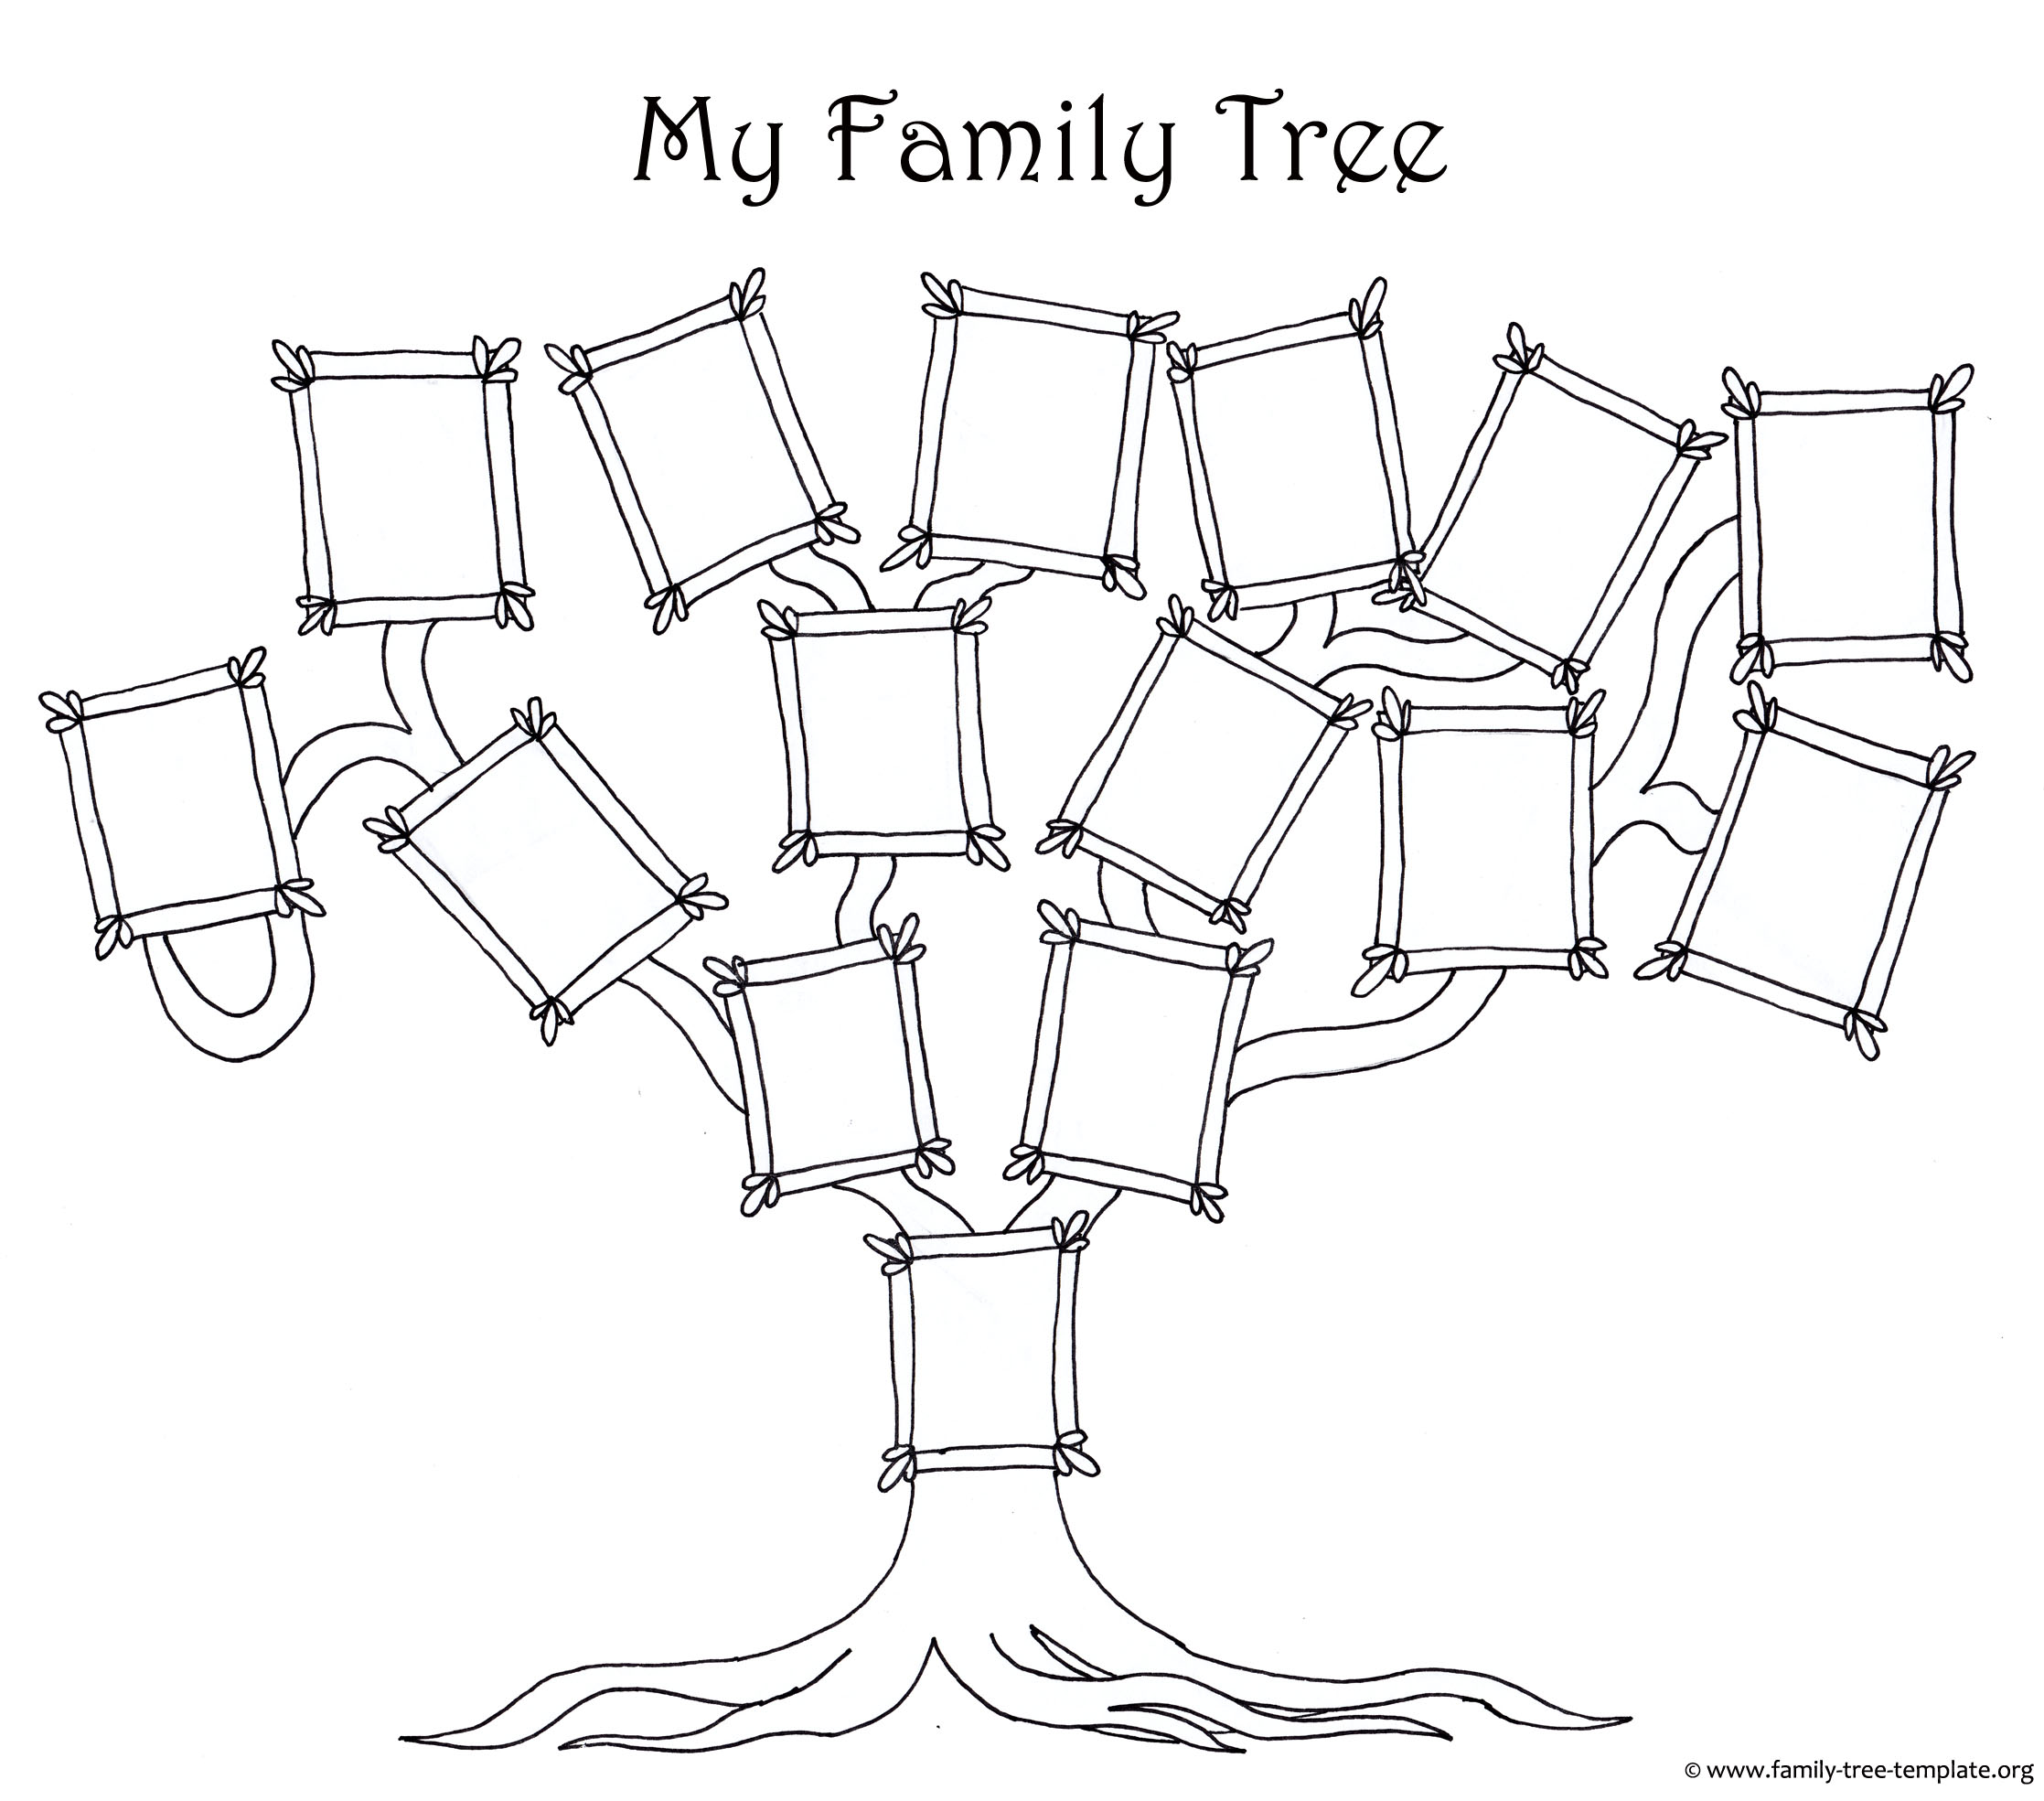 Free family tree template designs for making ancestry charts for How to draw a family tree template